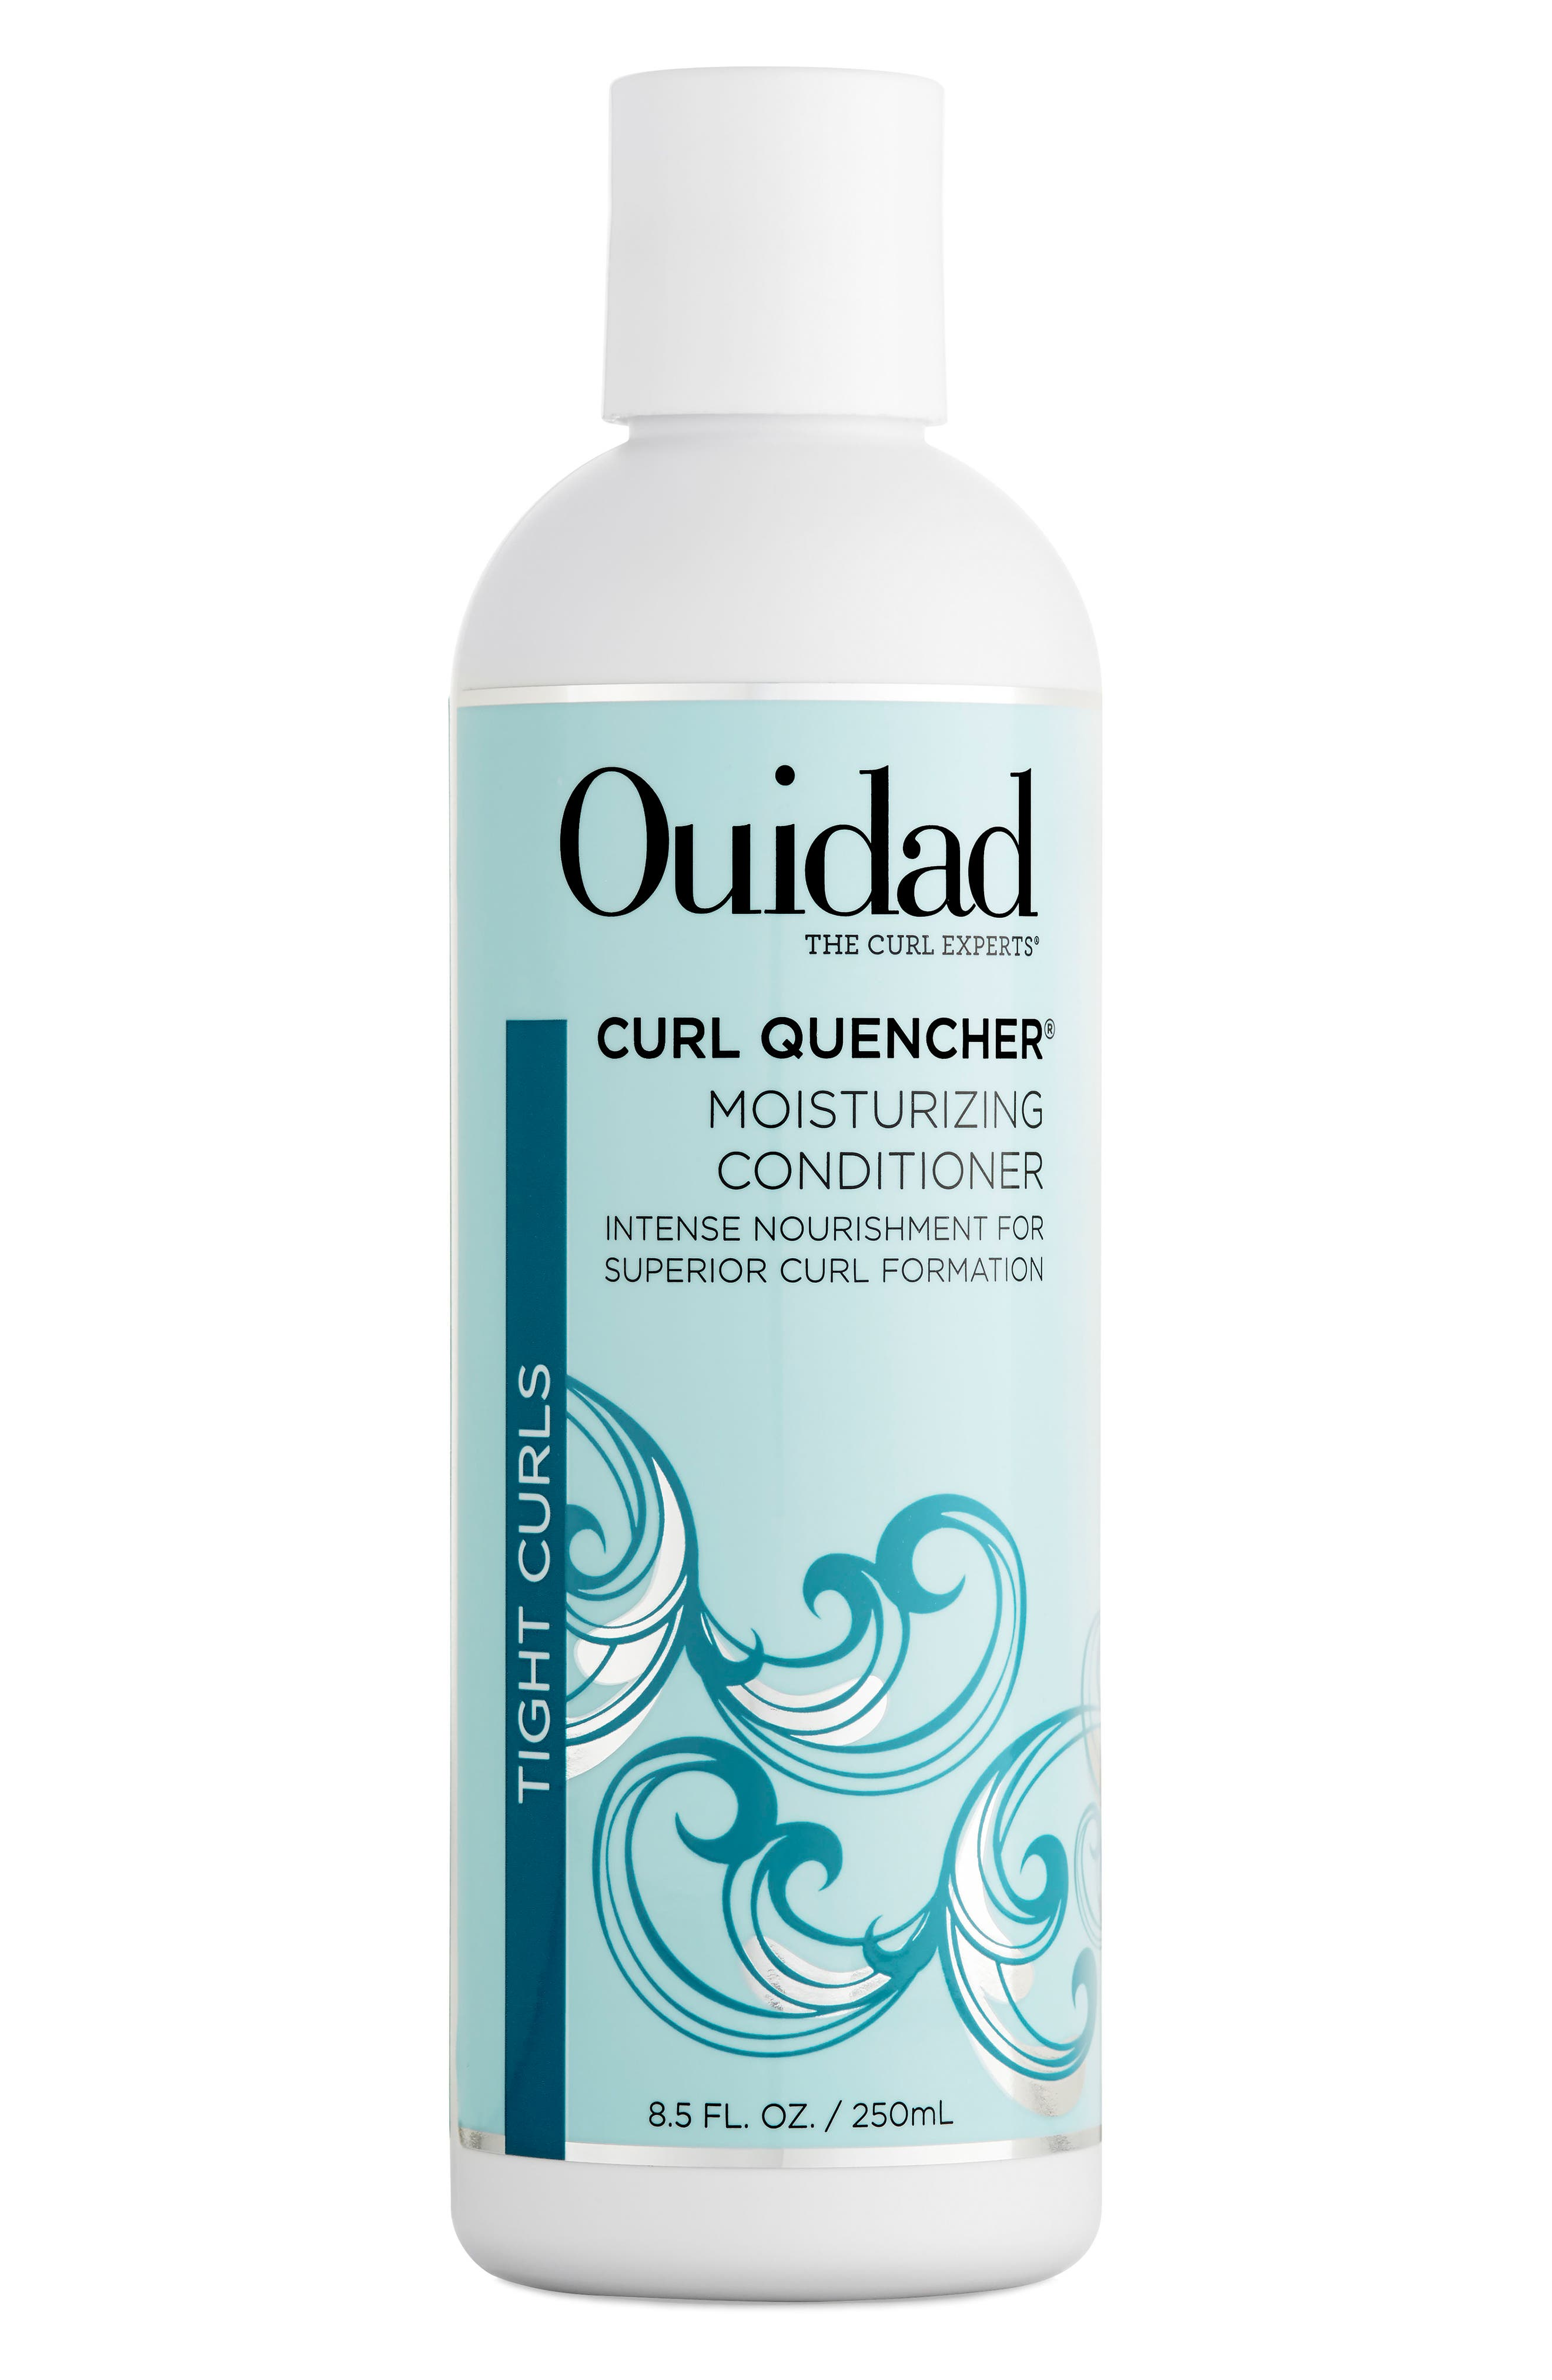 Ouidad Curl Quencher® Moisturizing Conditioner